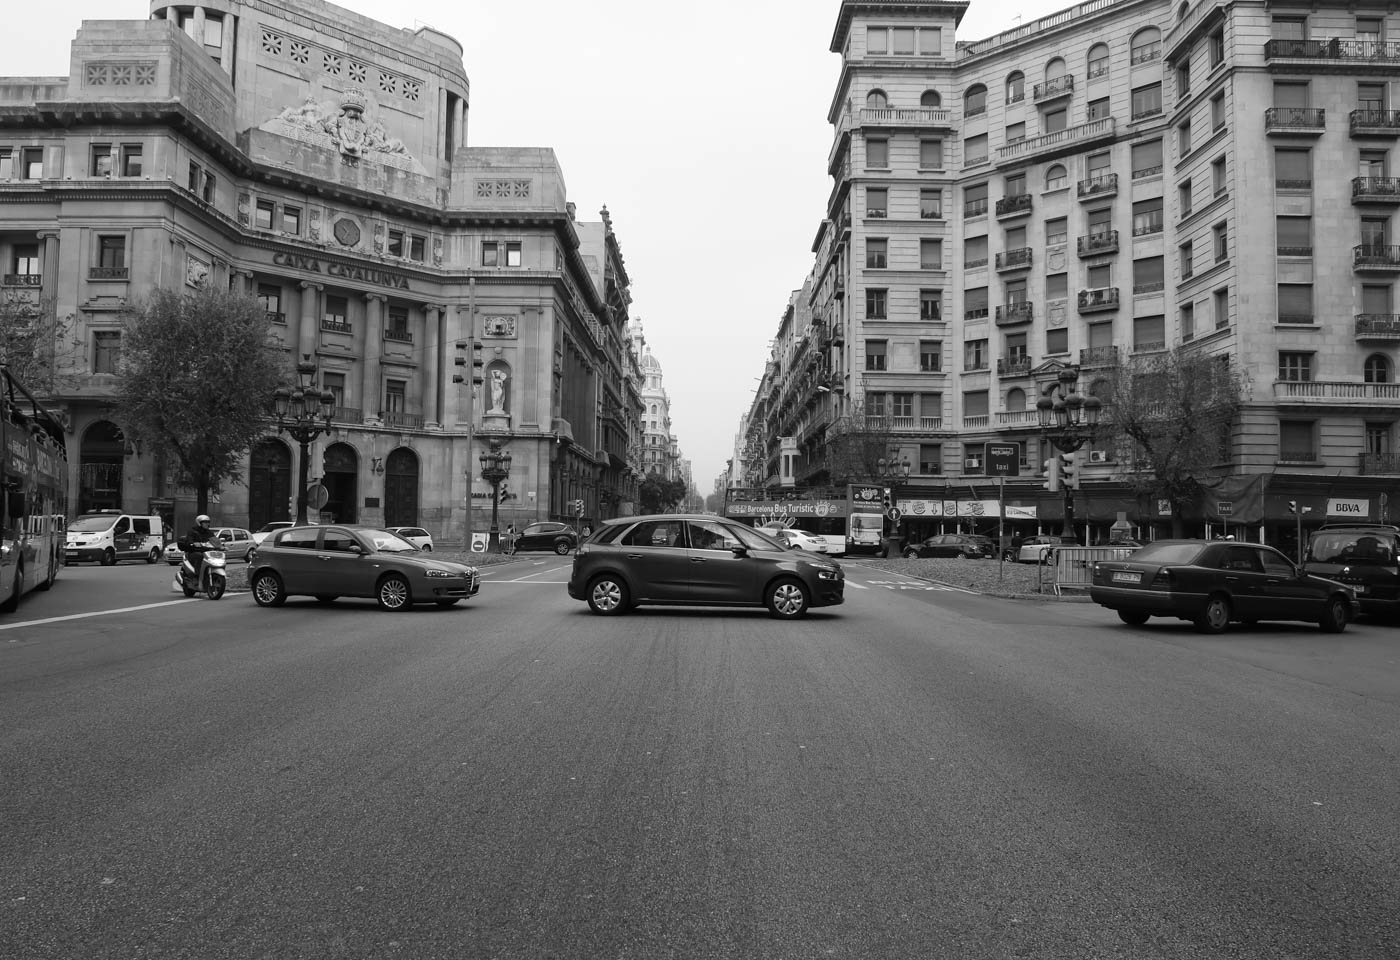 Black and white city, taken with the Canon PowerShot SX540 HS digital camera